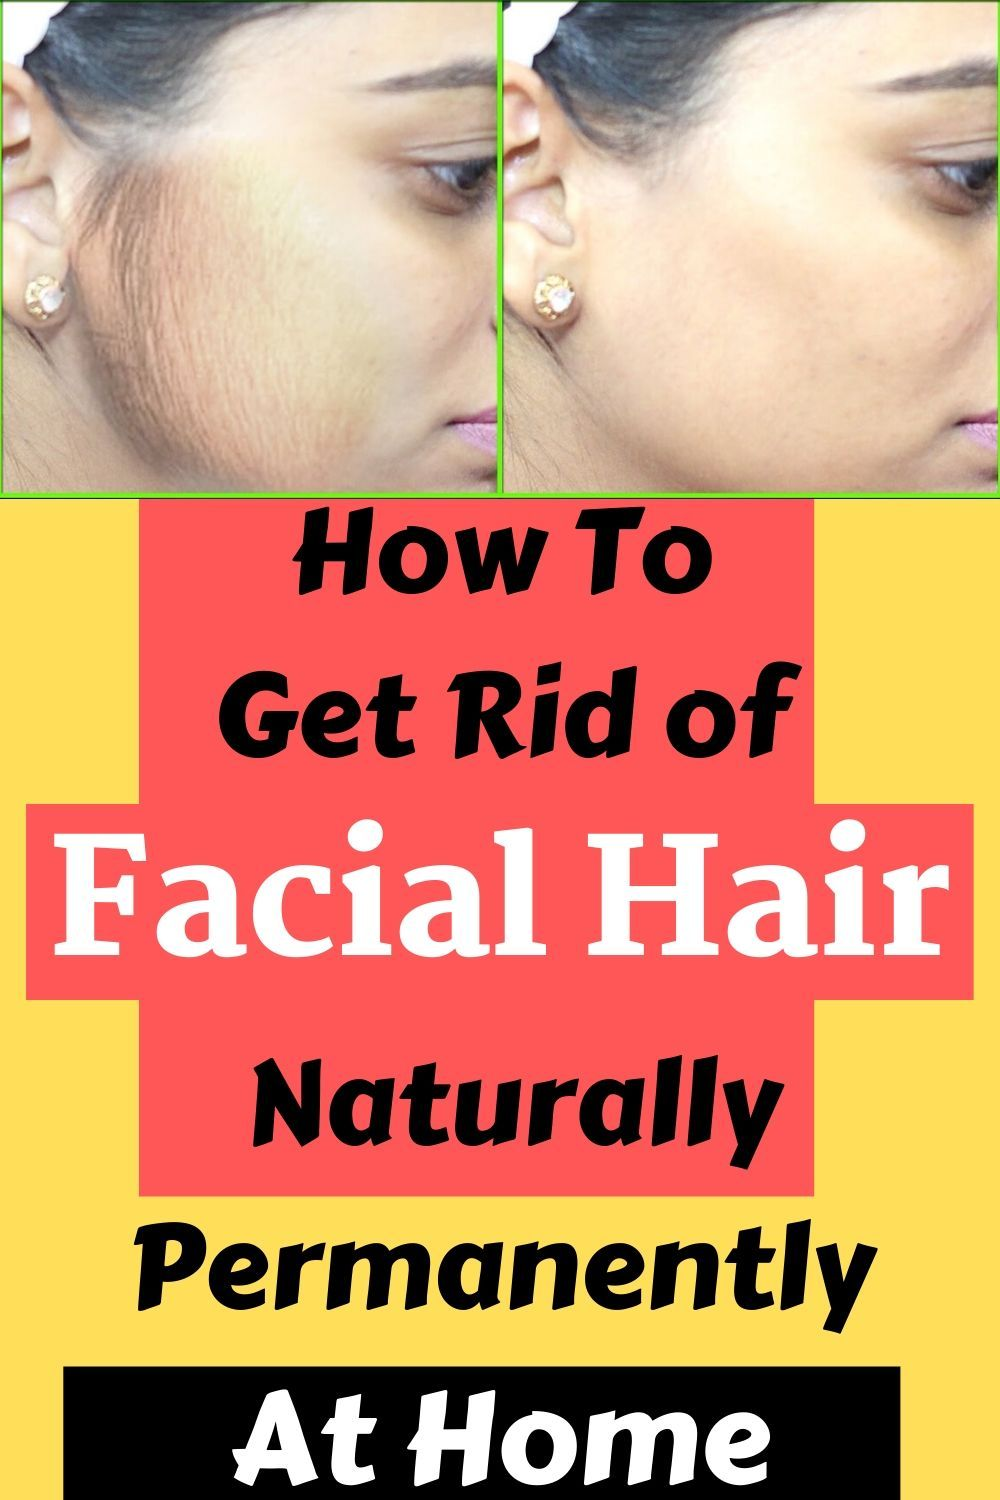 dabaac946f746d336440b513bebdf6eb - How To Get Rid Of Oily Face Permanently Naturally